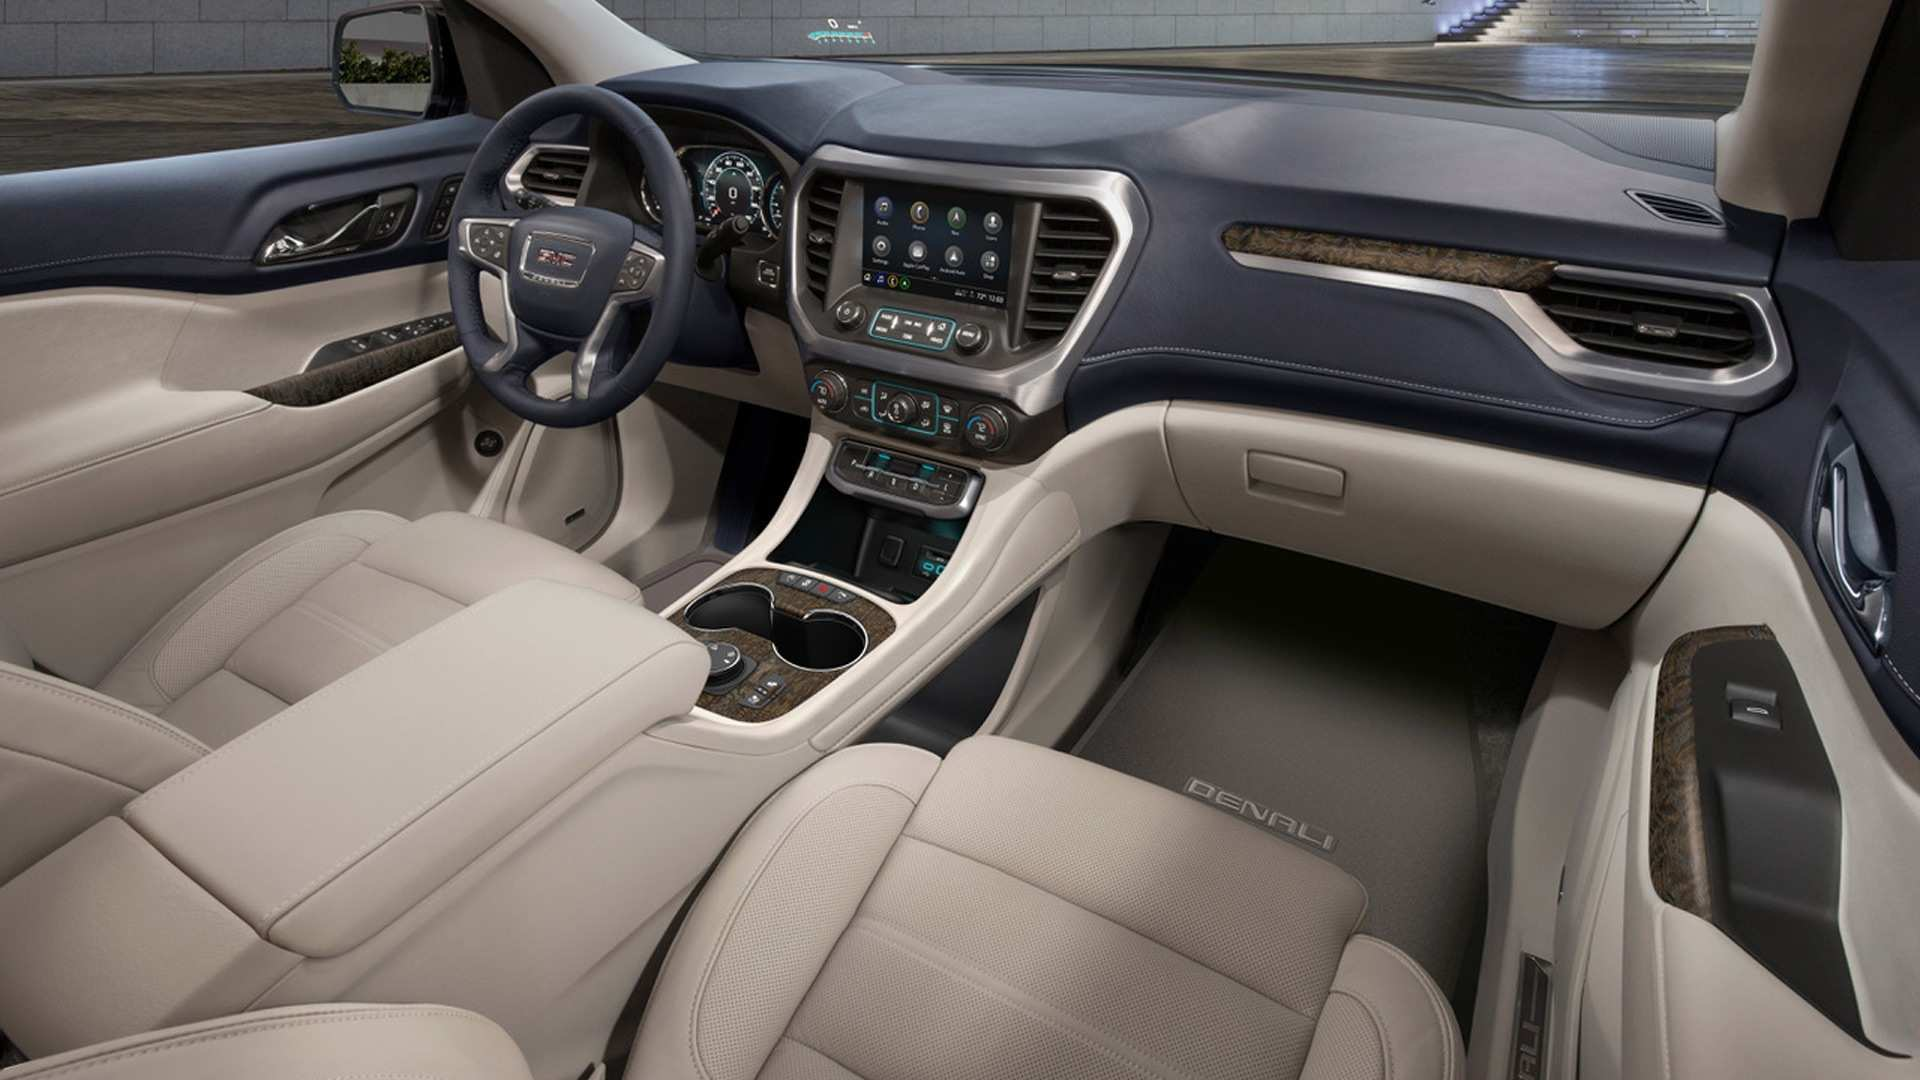 26 Best Review 2020 Gmc Midsize Suv Interior with 2020 Gmc Midsize Suv